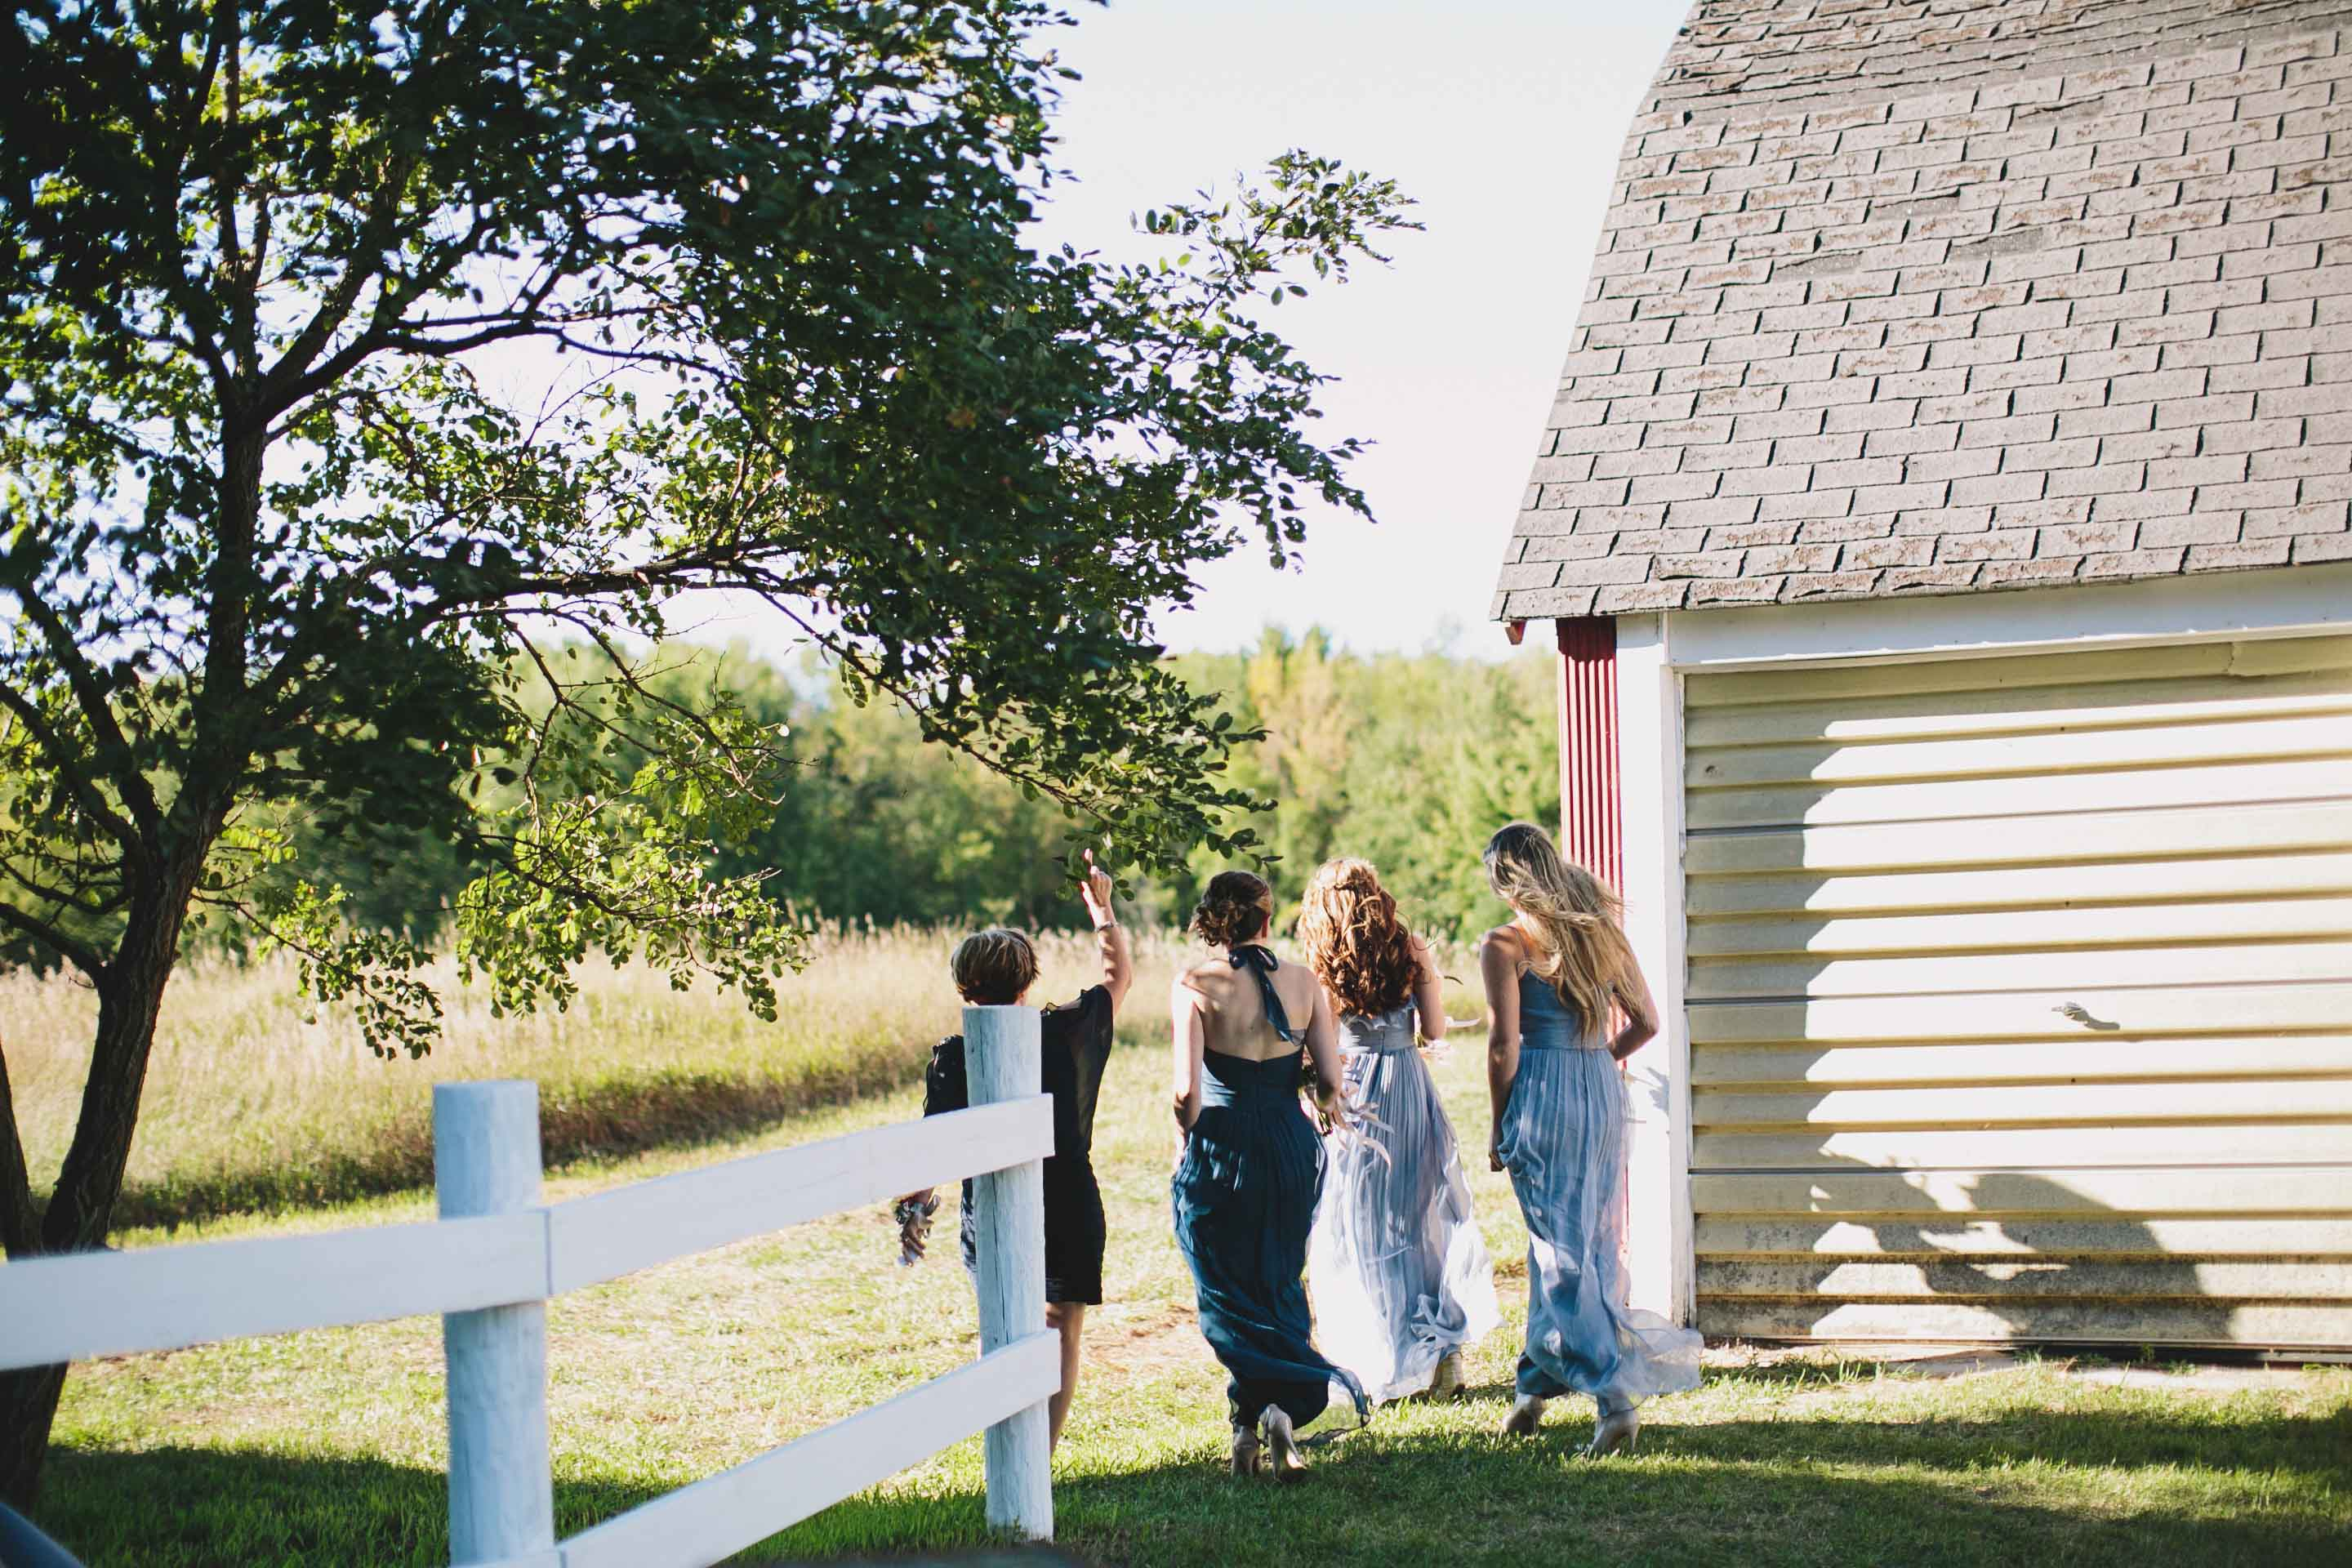 Fall Wedding | Barn Wedding | Rustic Wedding | Tableau Events